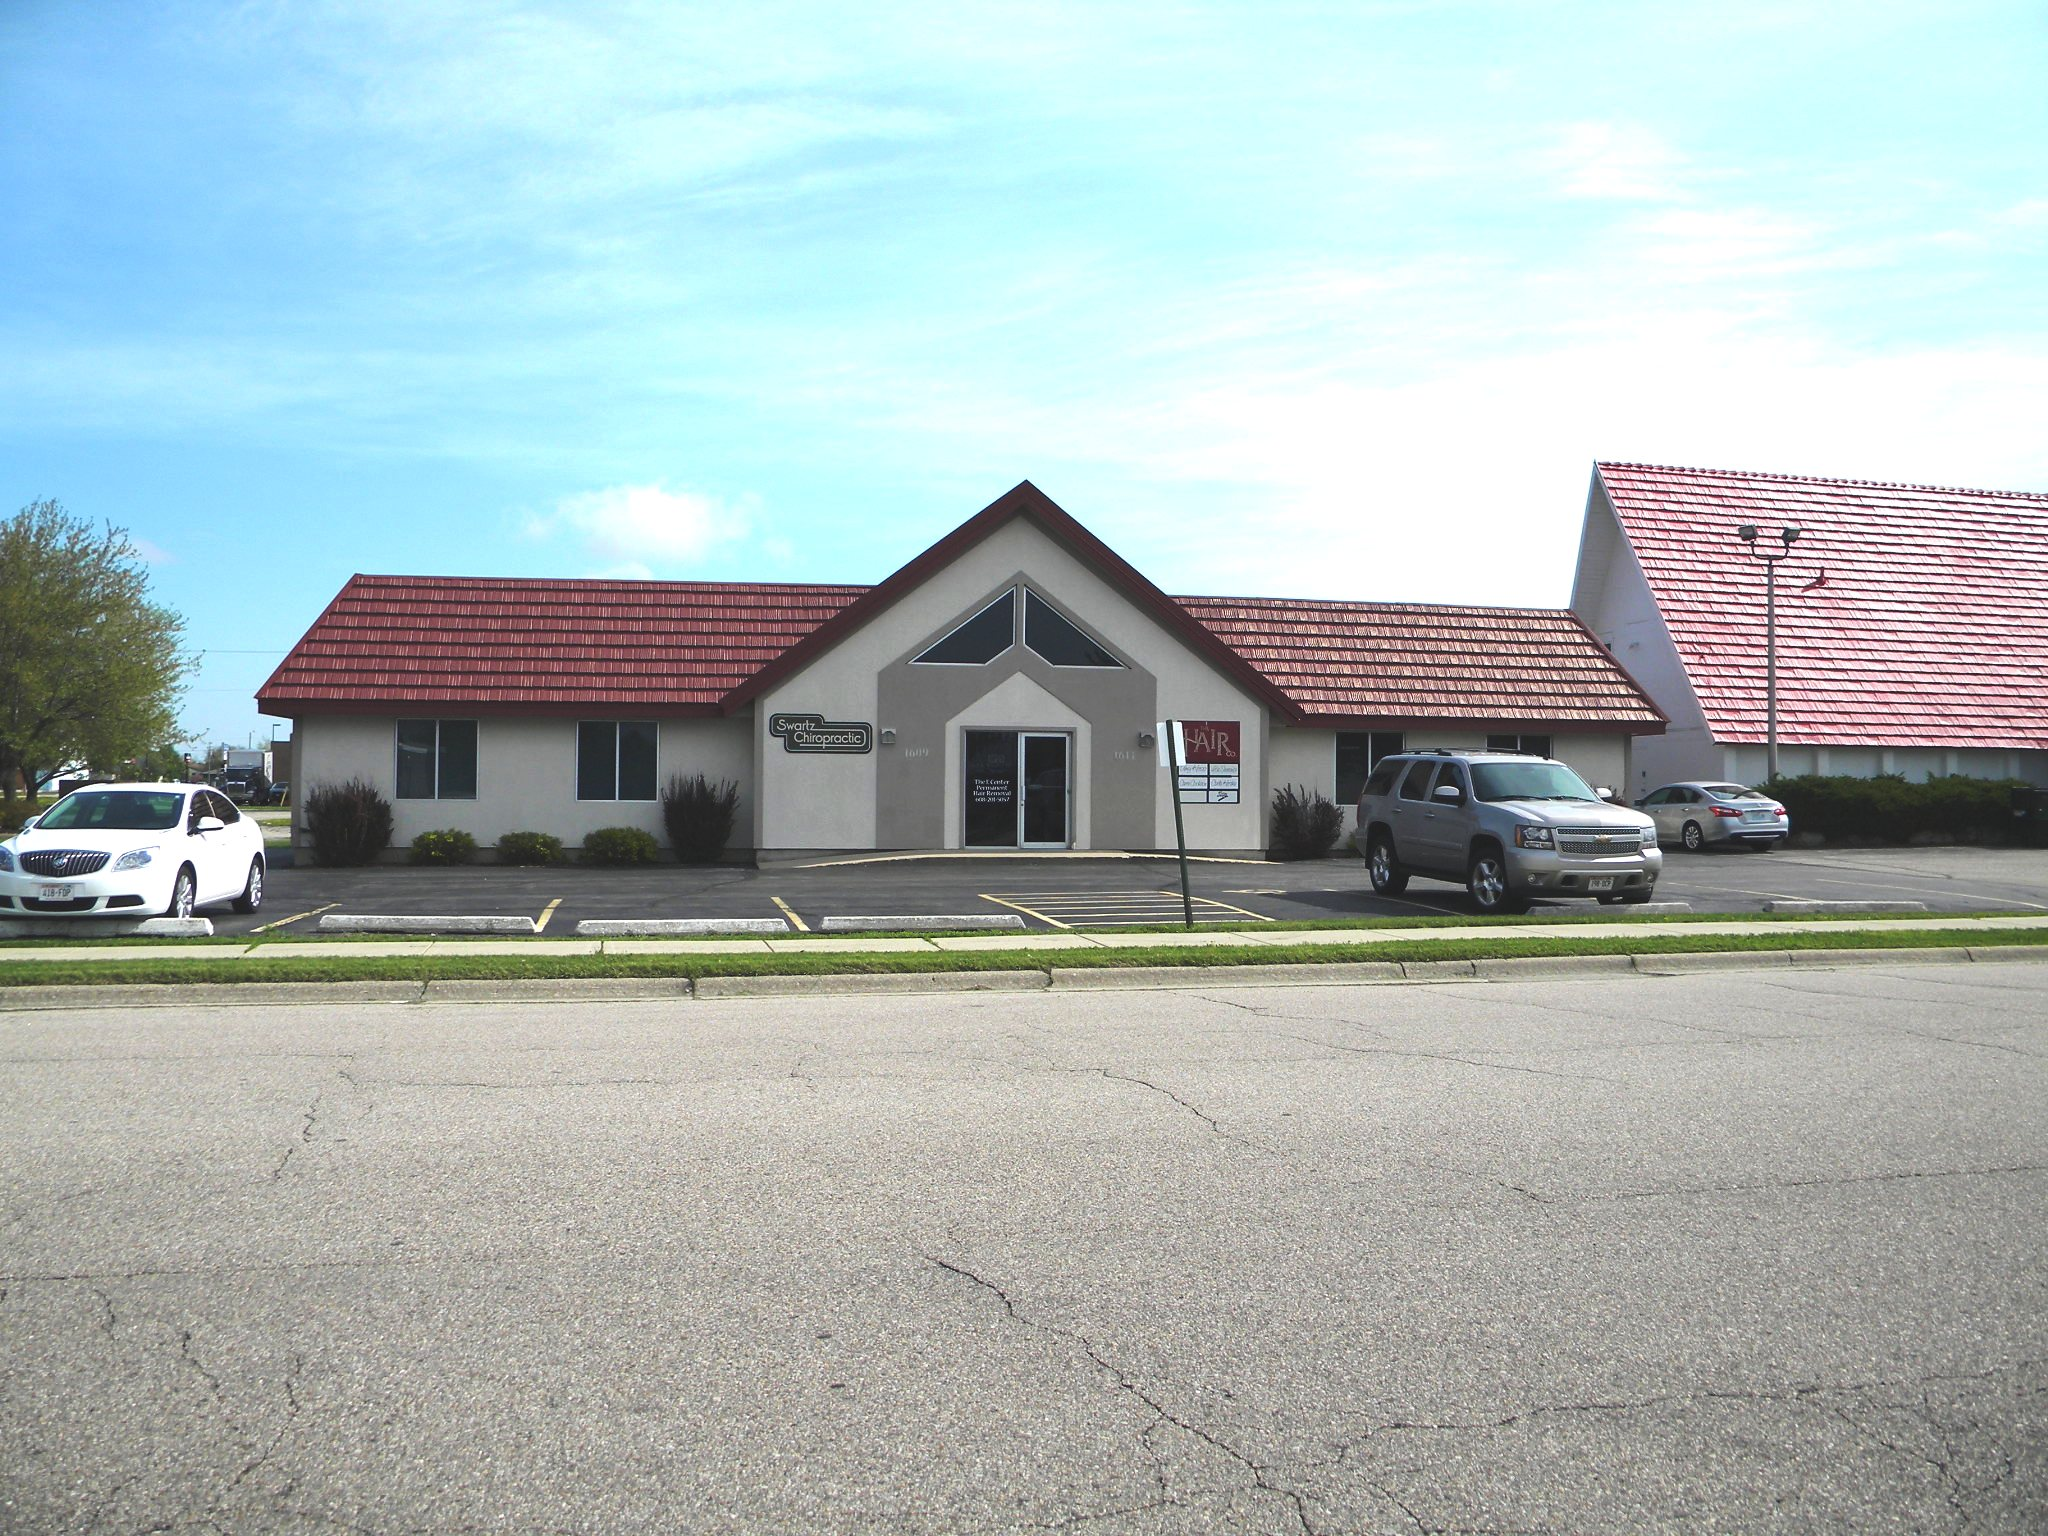 Garage Builders Janesville Wi Commercial Property For Lease In Janesville Wi And Beloit Wi